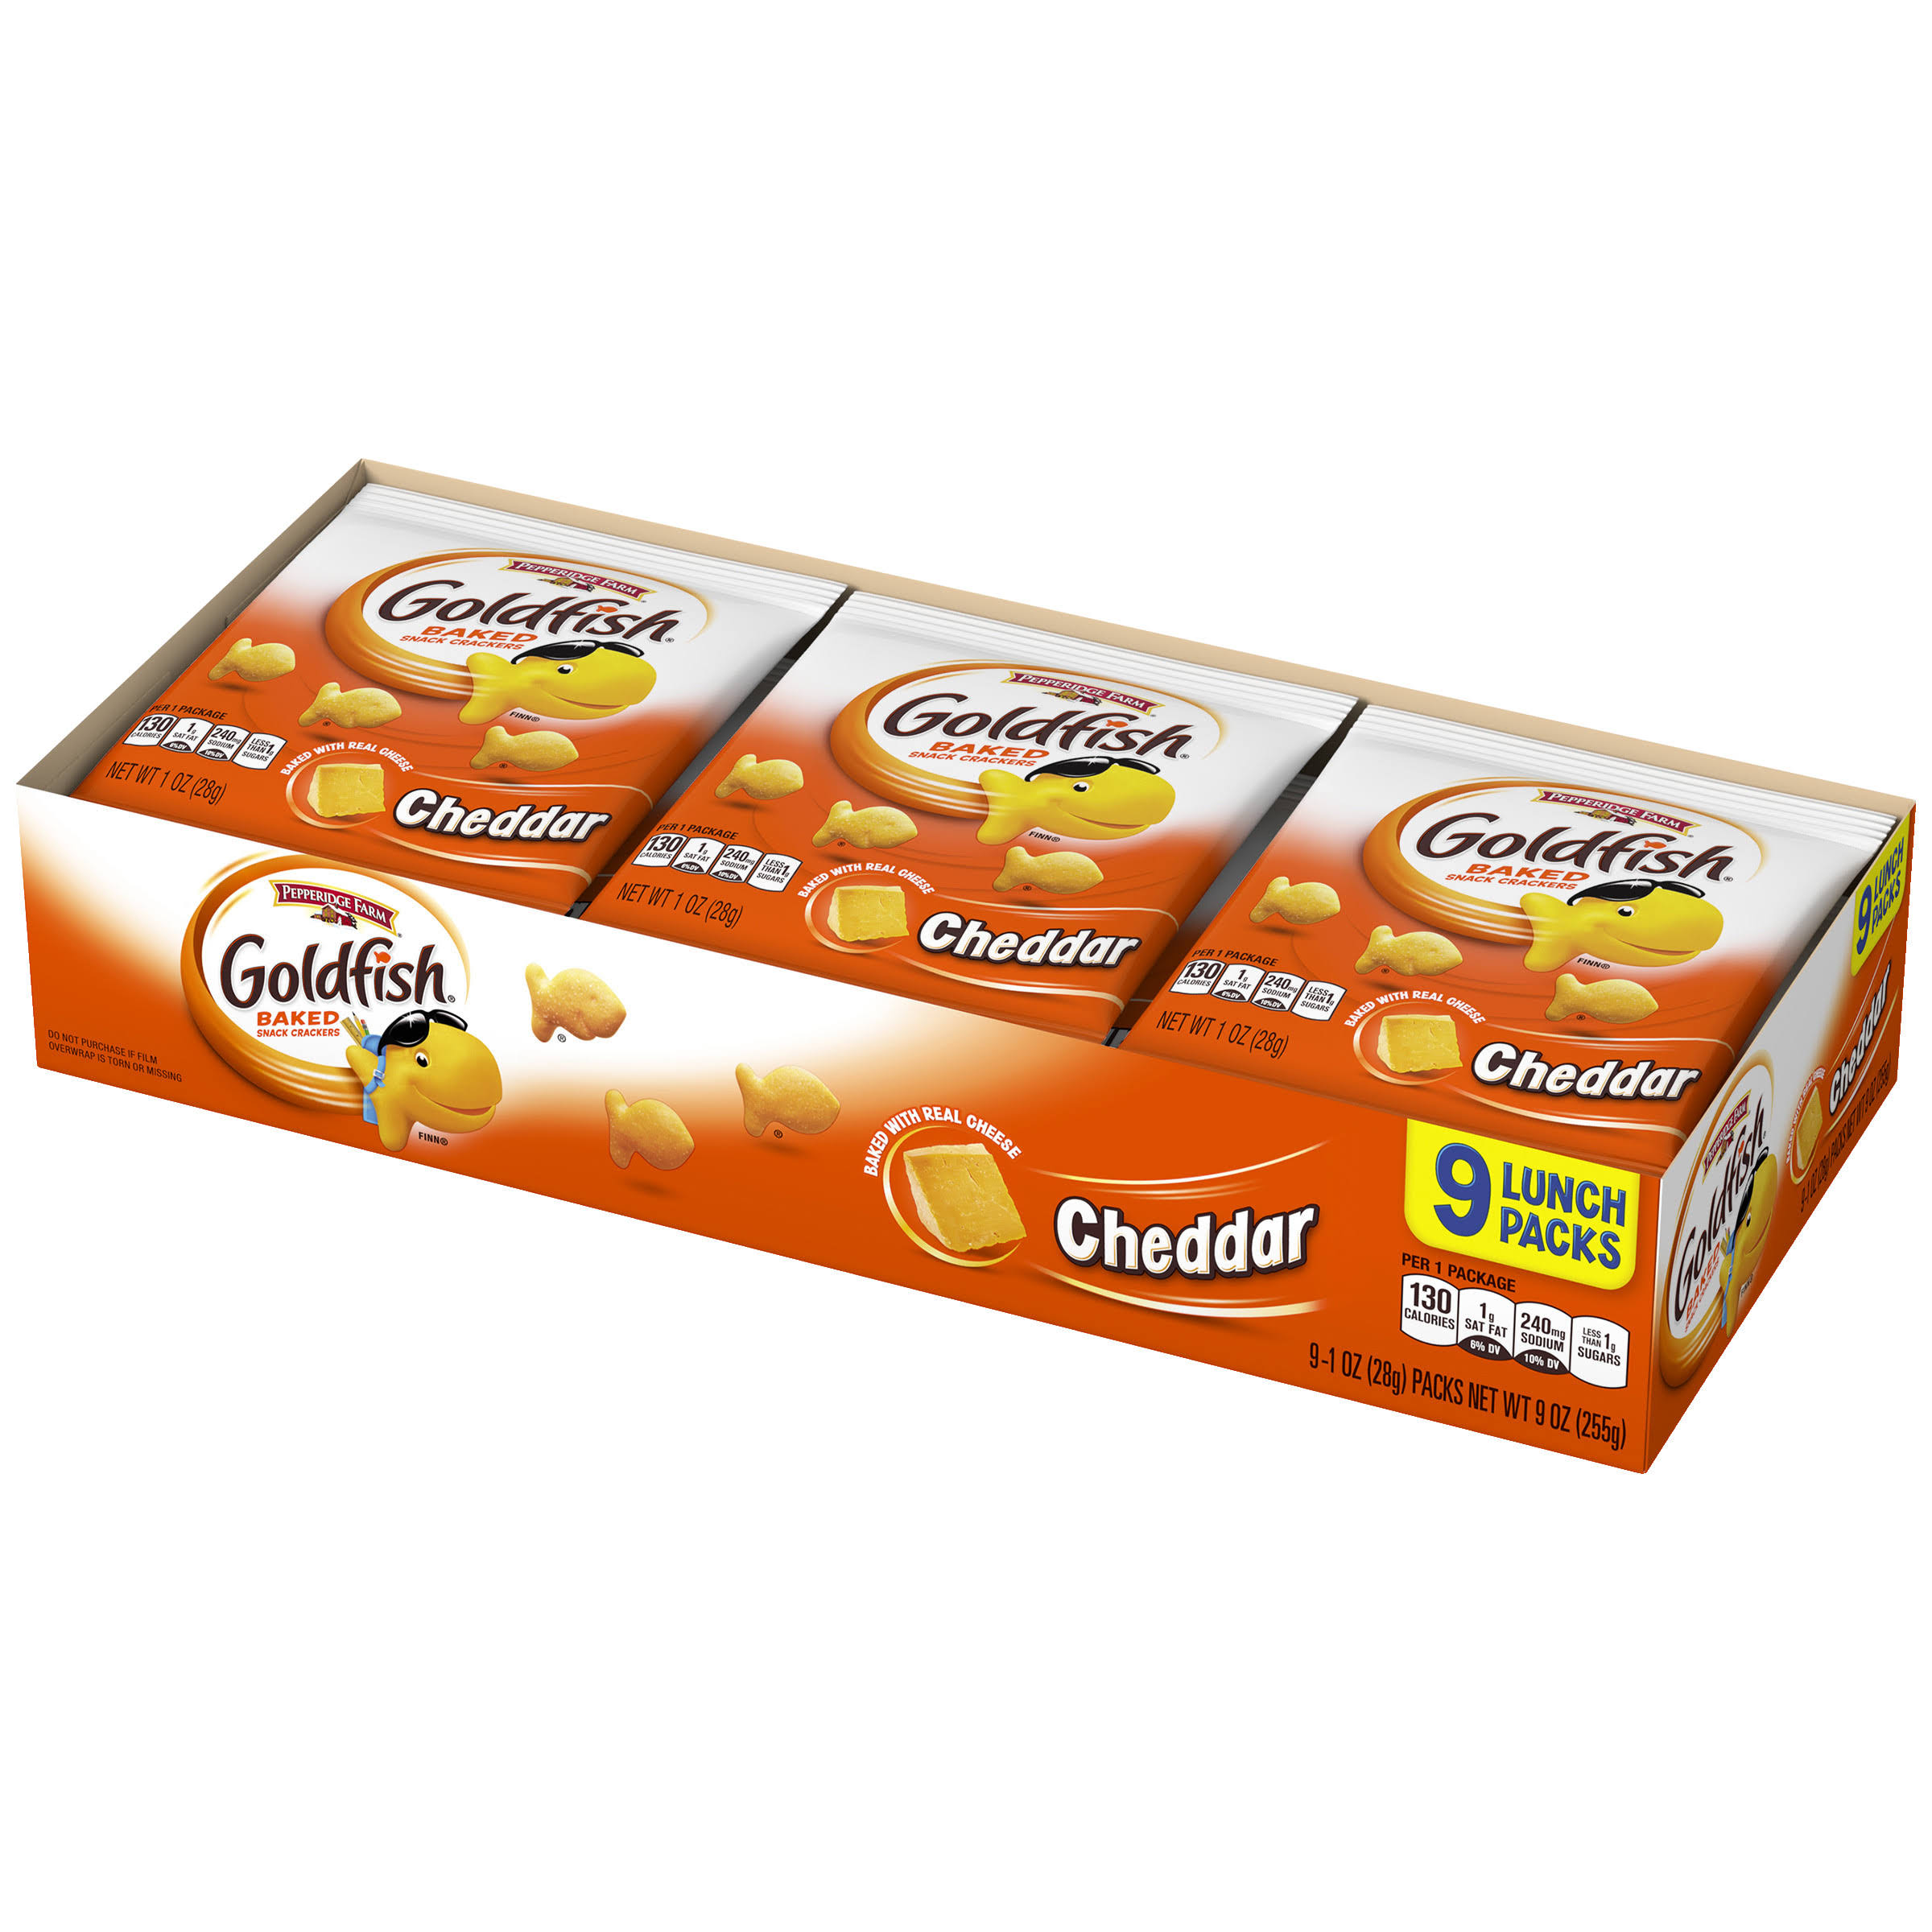 Pepperidge Farm Goldfish Baked Snack Crackers - Cheddar, 1oz